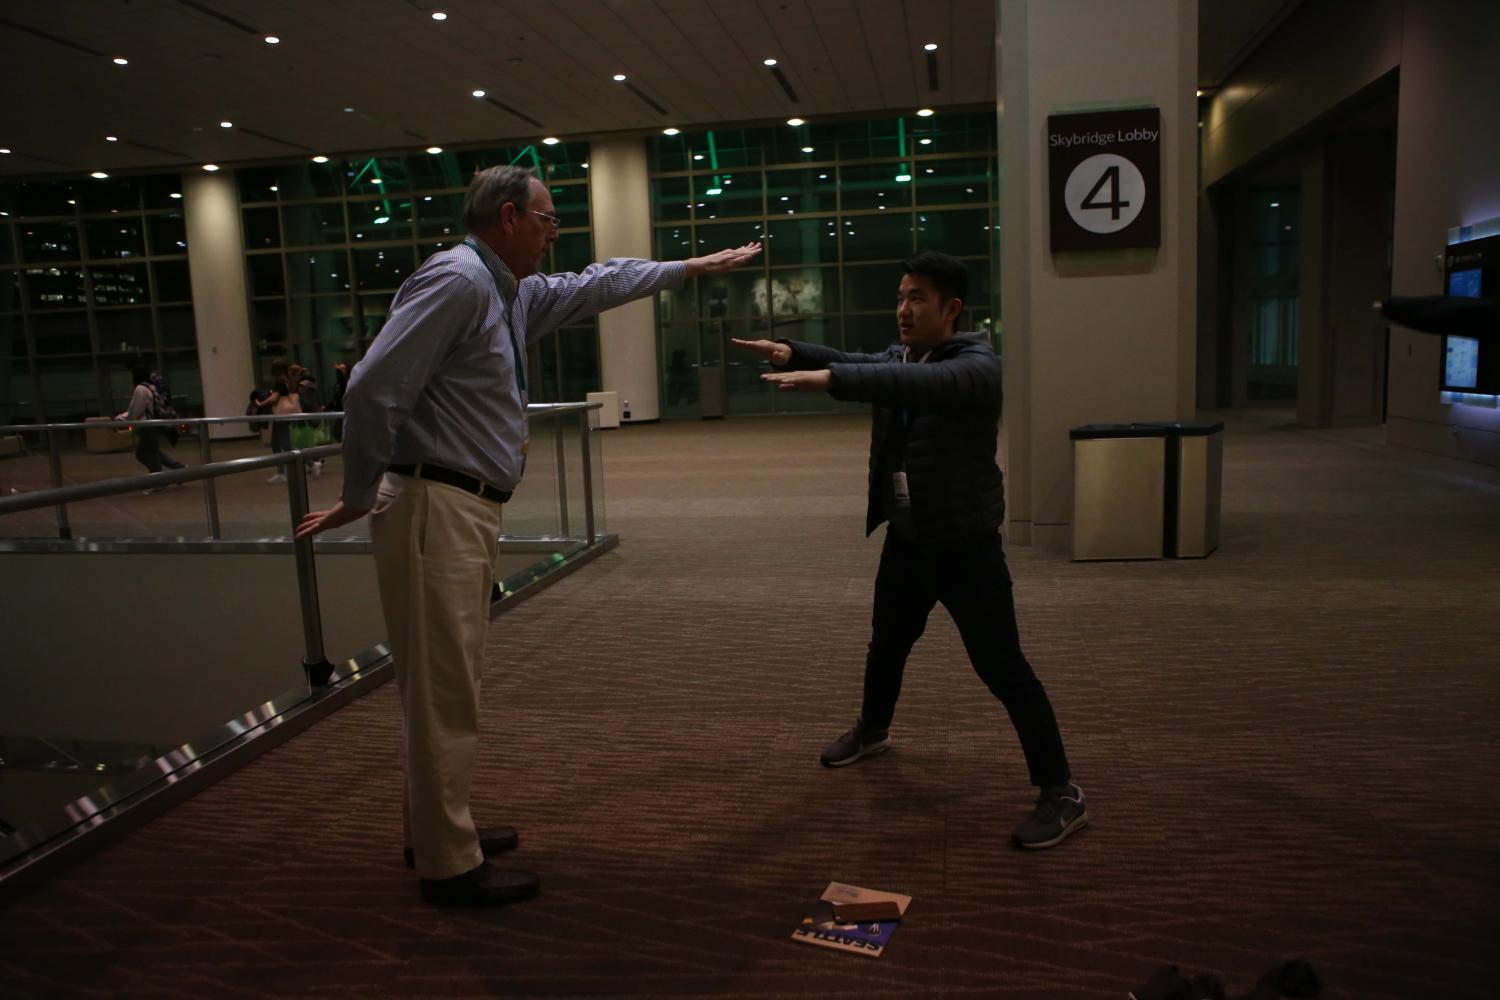 Butch Keller and Alex Youn whip at the Seattle presentation last week. The journalism program sent a group of programs to Seattle last month.